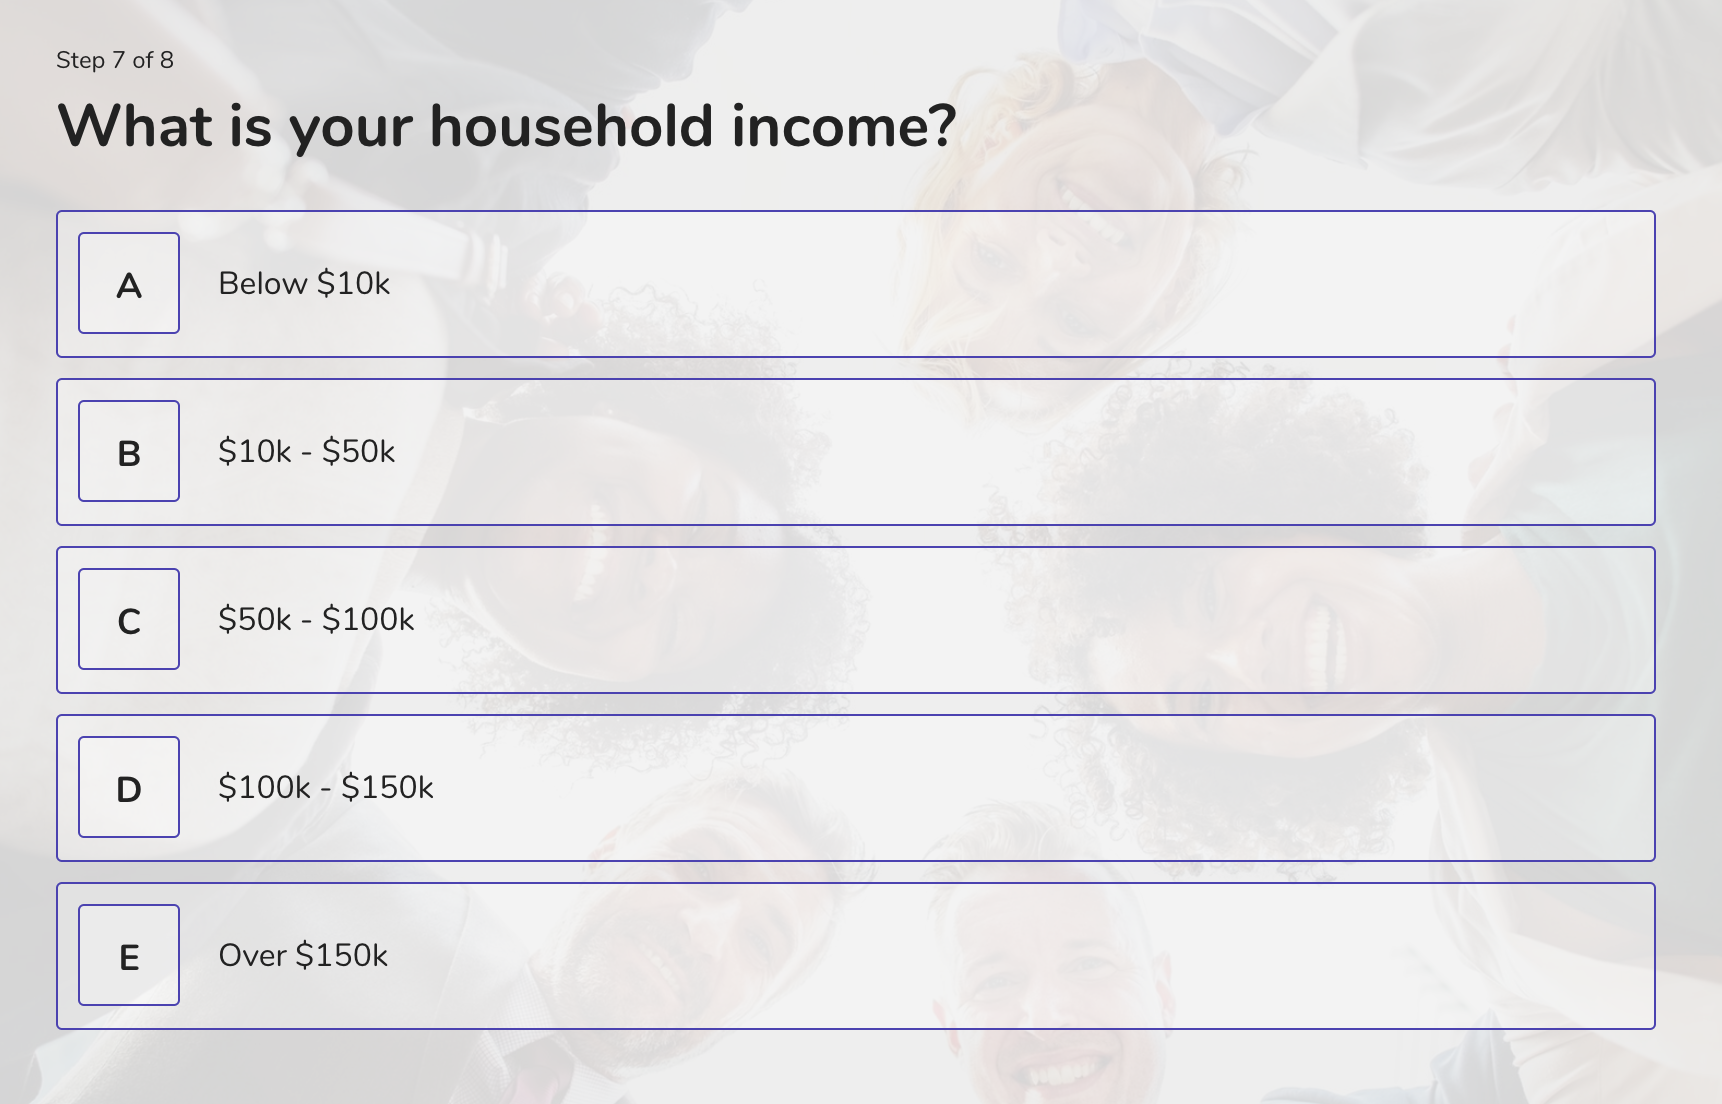 demographic question example - household